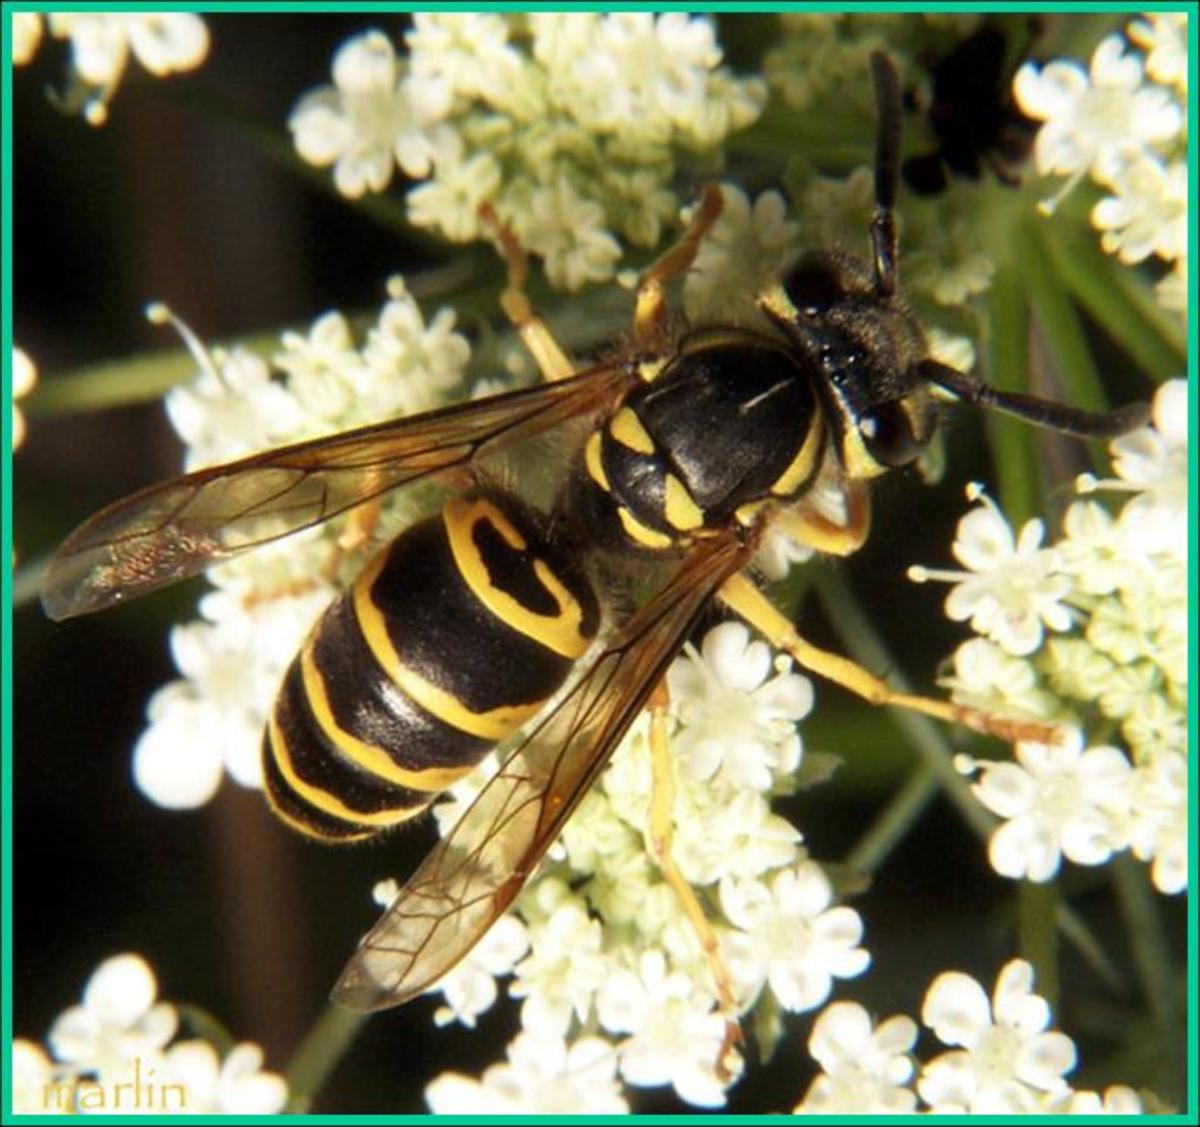 Yellowjacket on flowering plant